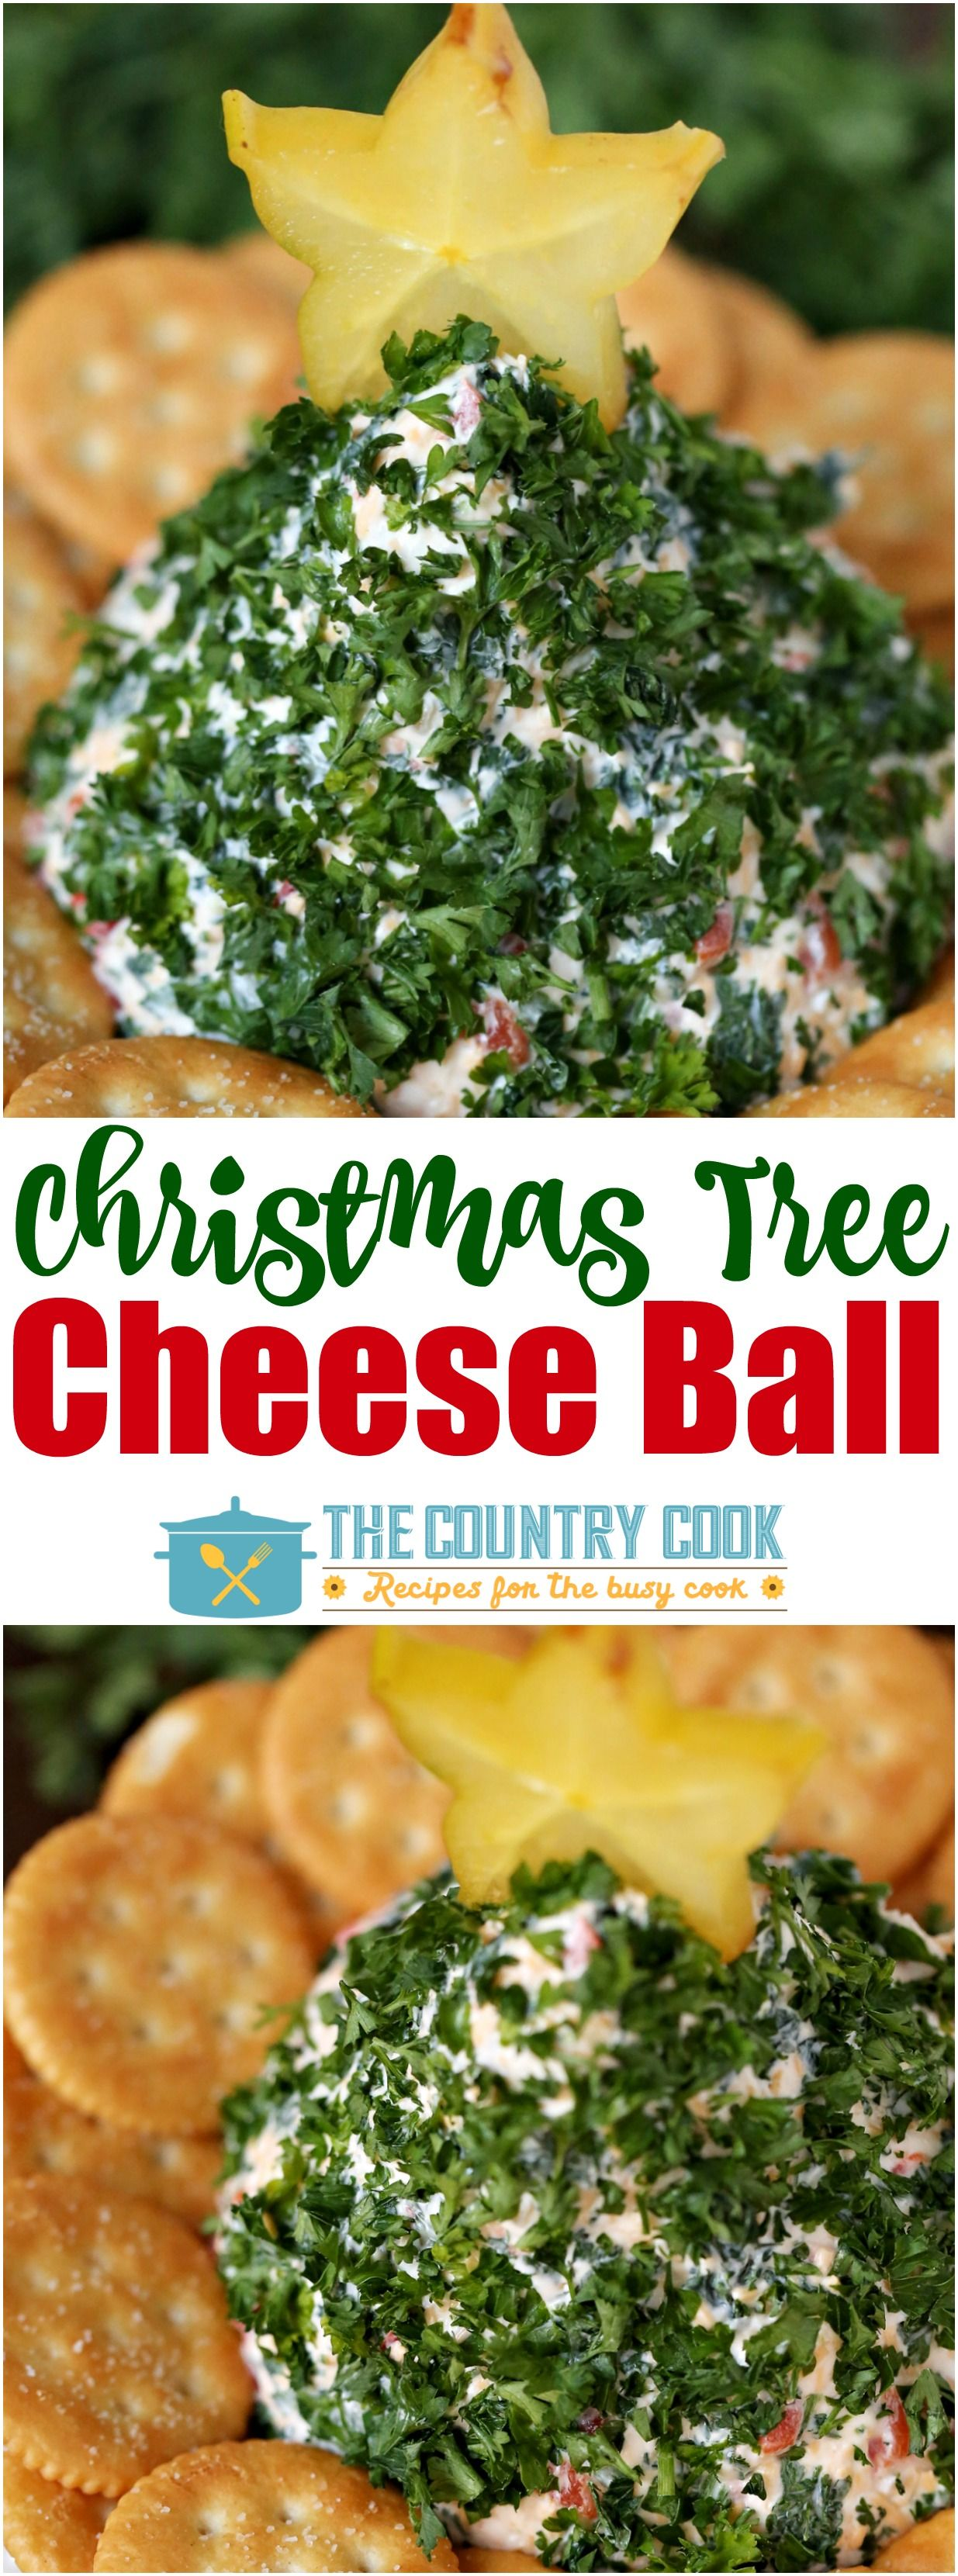 This Christmas-Tree Shaped Cheese Ball is the hit of every holiday party. It looks pretty, it's simple to make and it tastes amazing too!